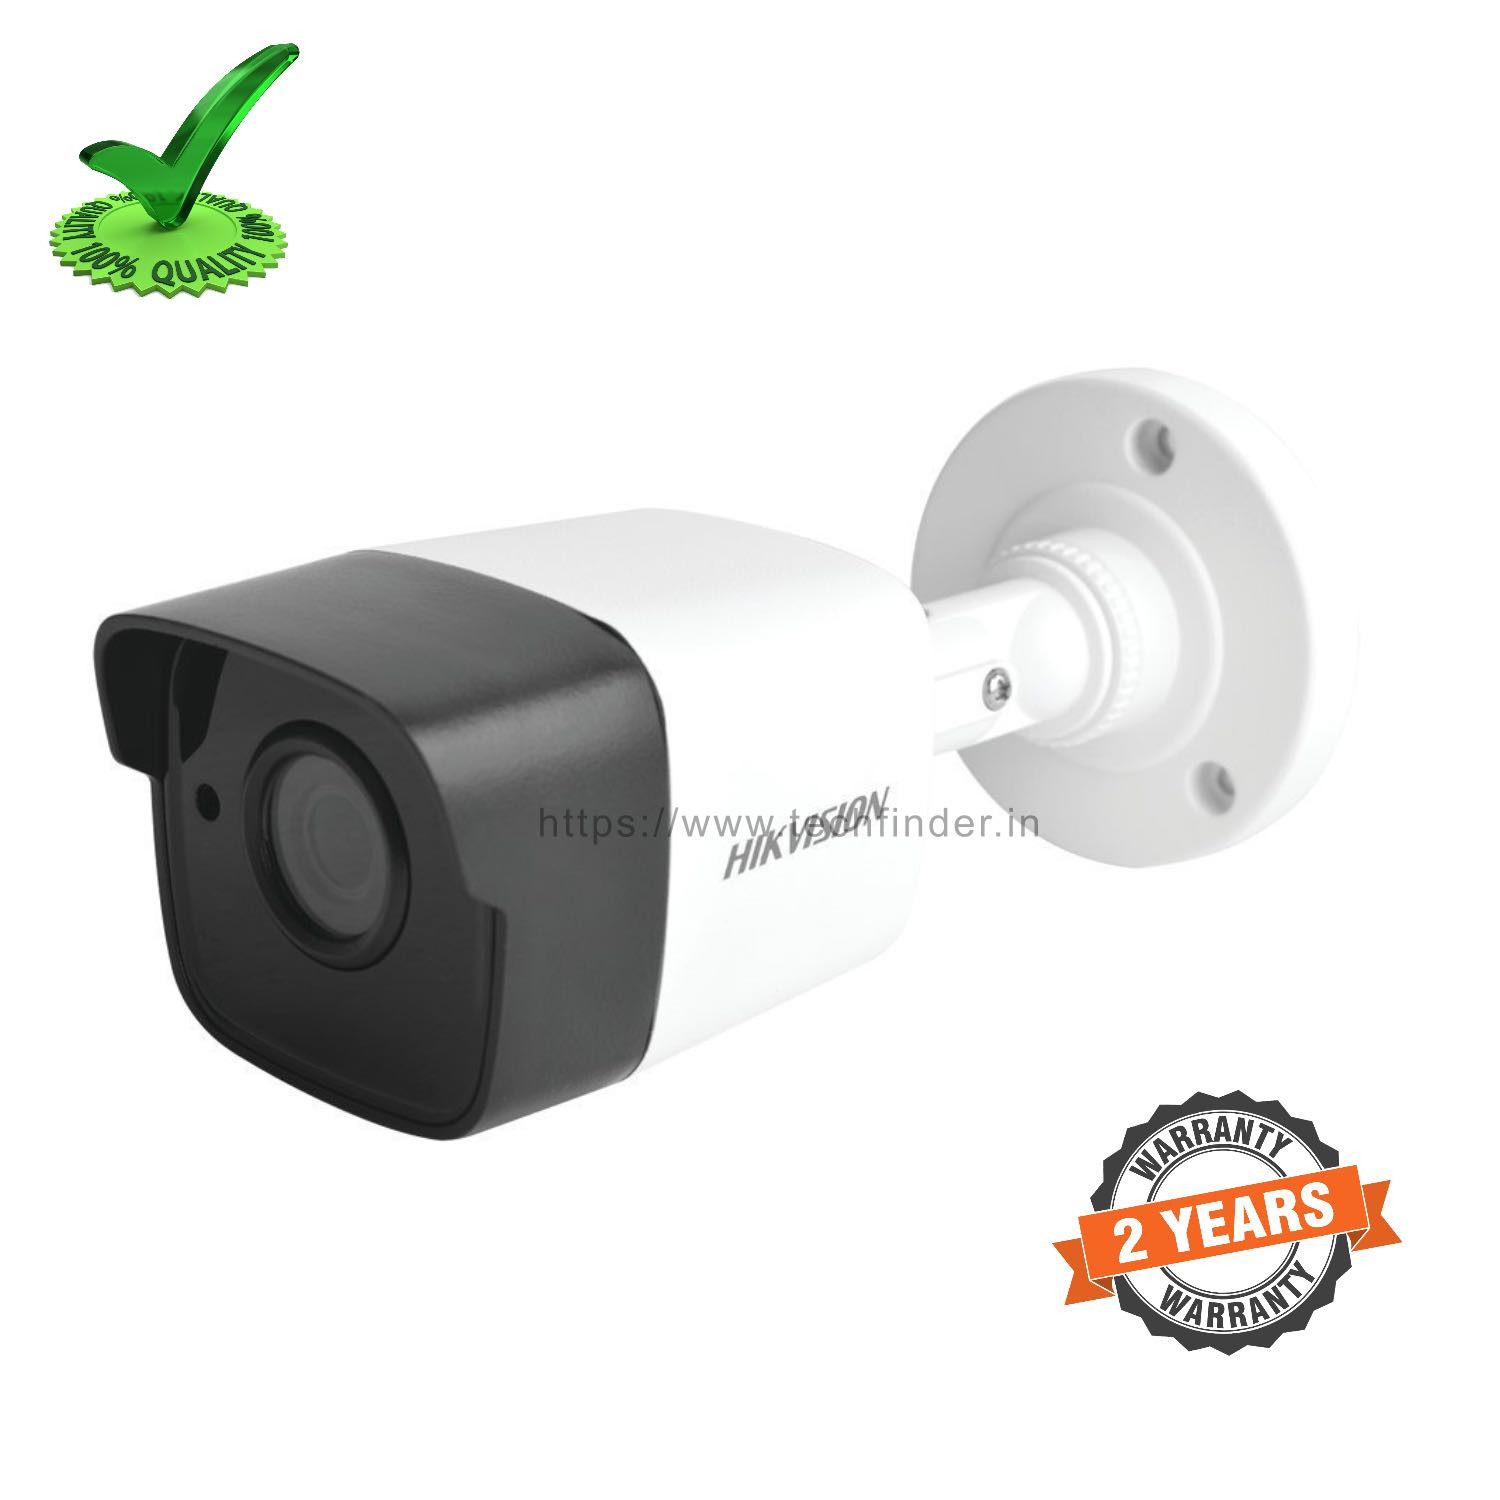 Hikvision DS-2CE1AH0T-ITPF 5mp HD IR Bullet Camera